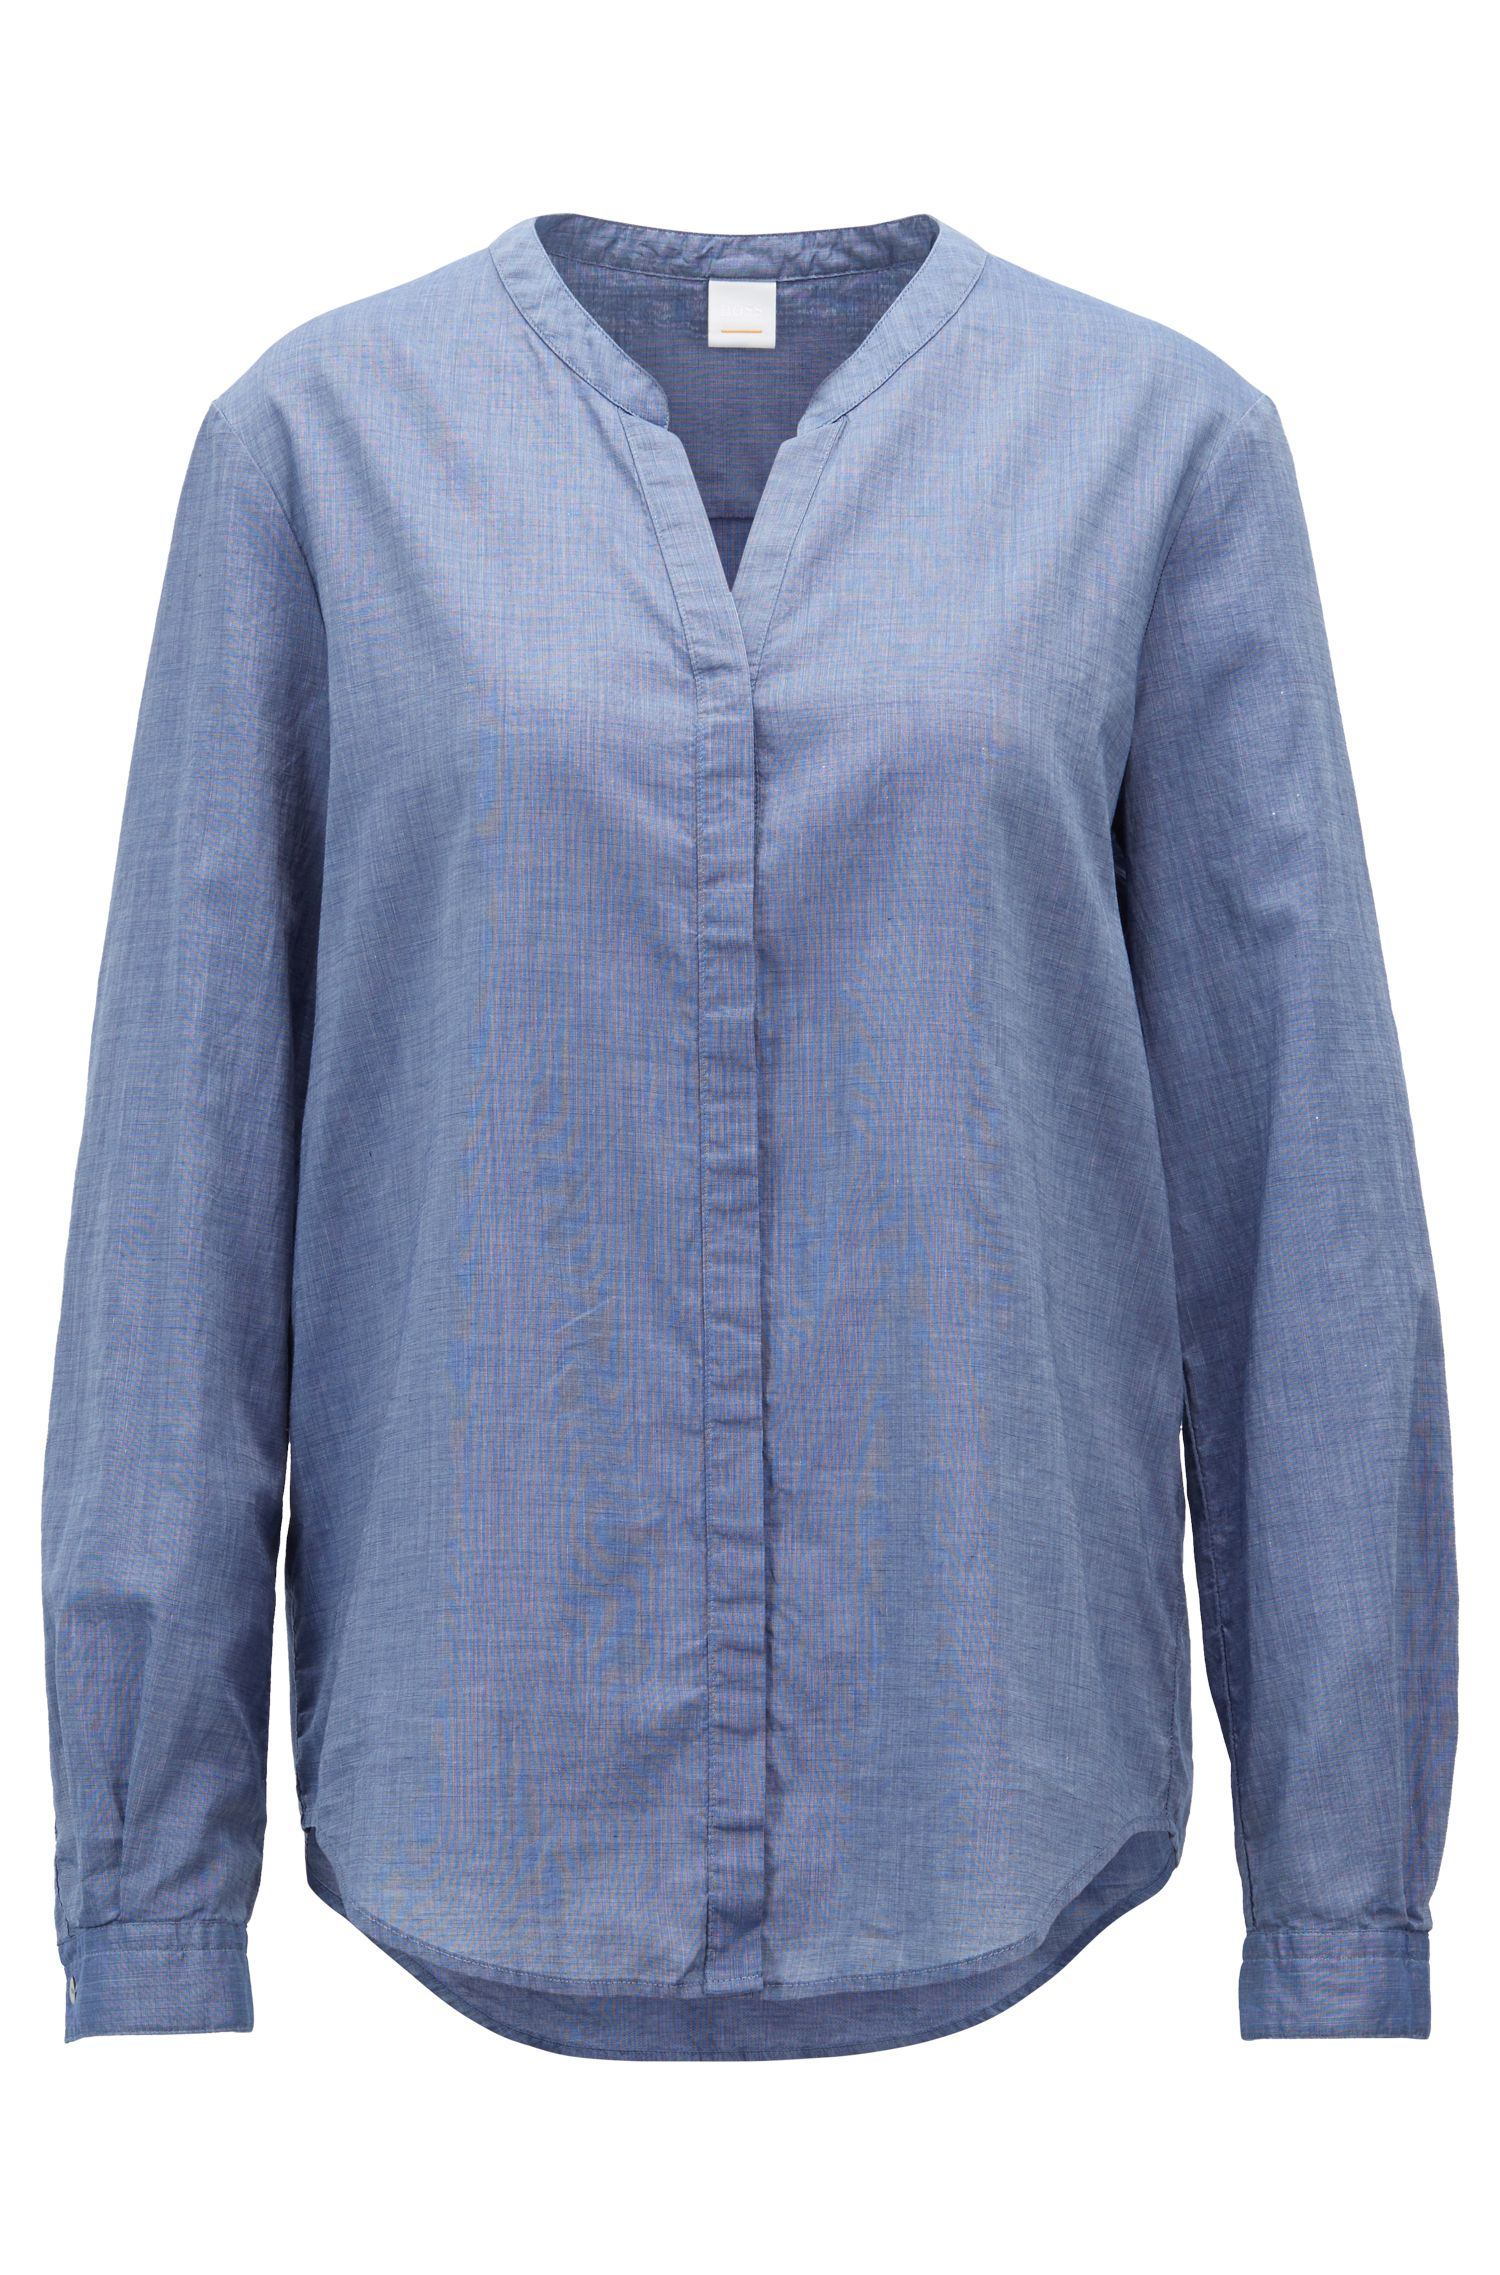 Chemisier Relaxed Fit en chambray de coton mélangé